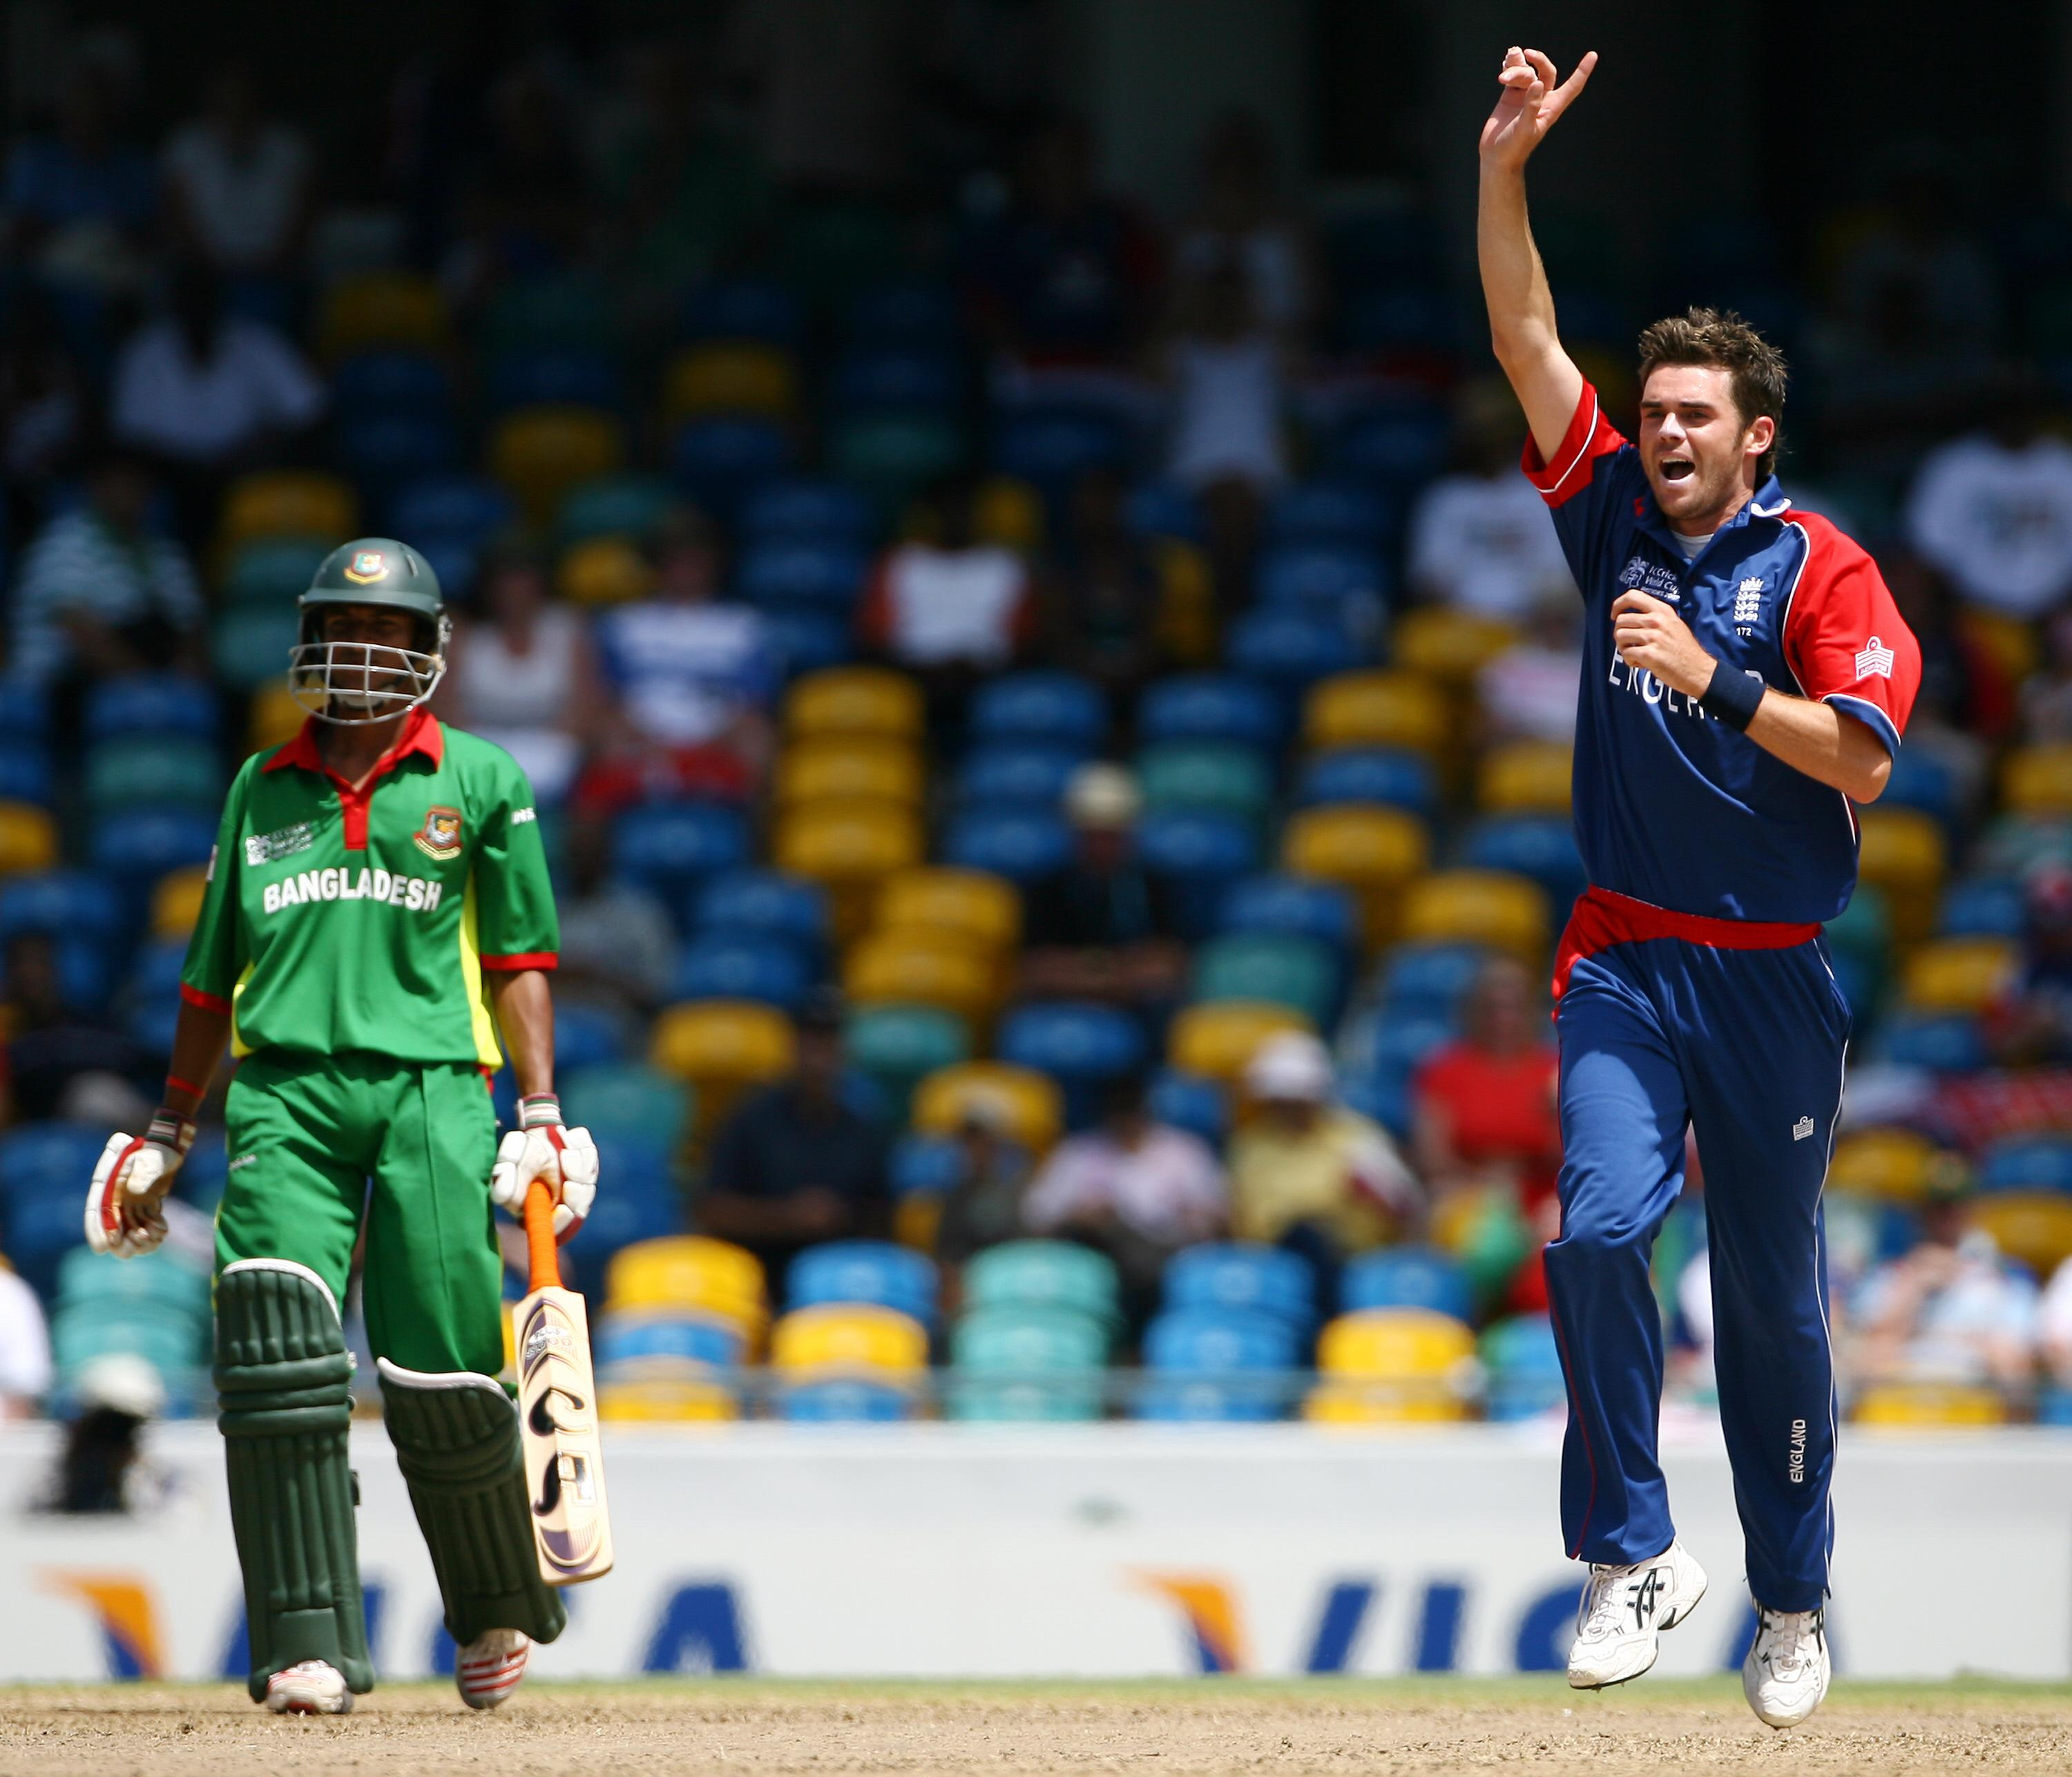 Mohammad Ashraful playing against England in the 2007 World Cup - and he hopes to play in the tournament again next year